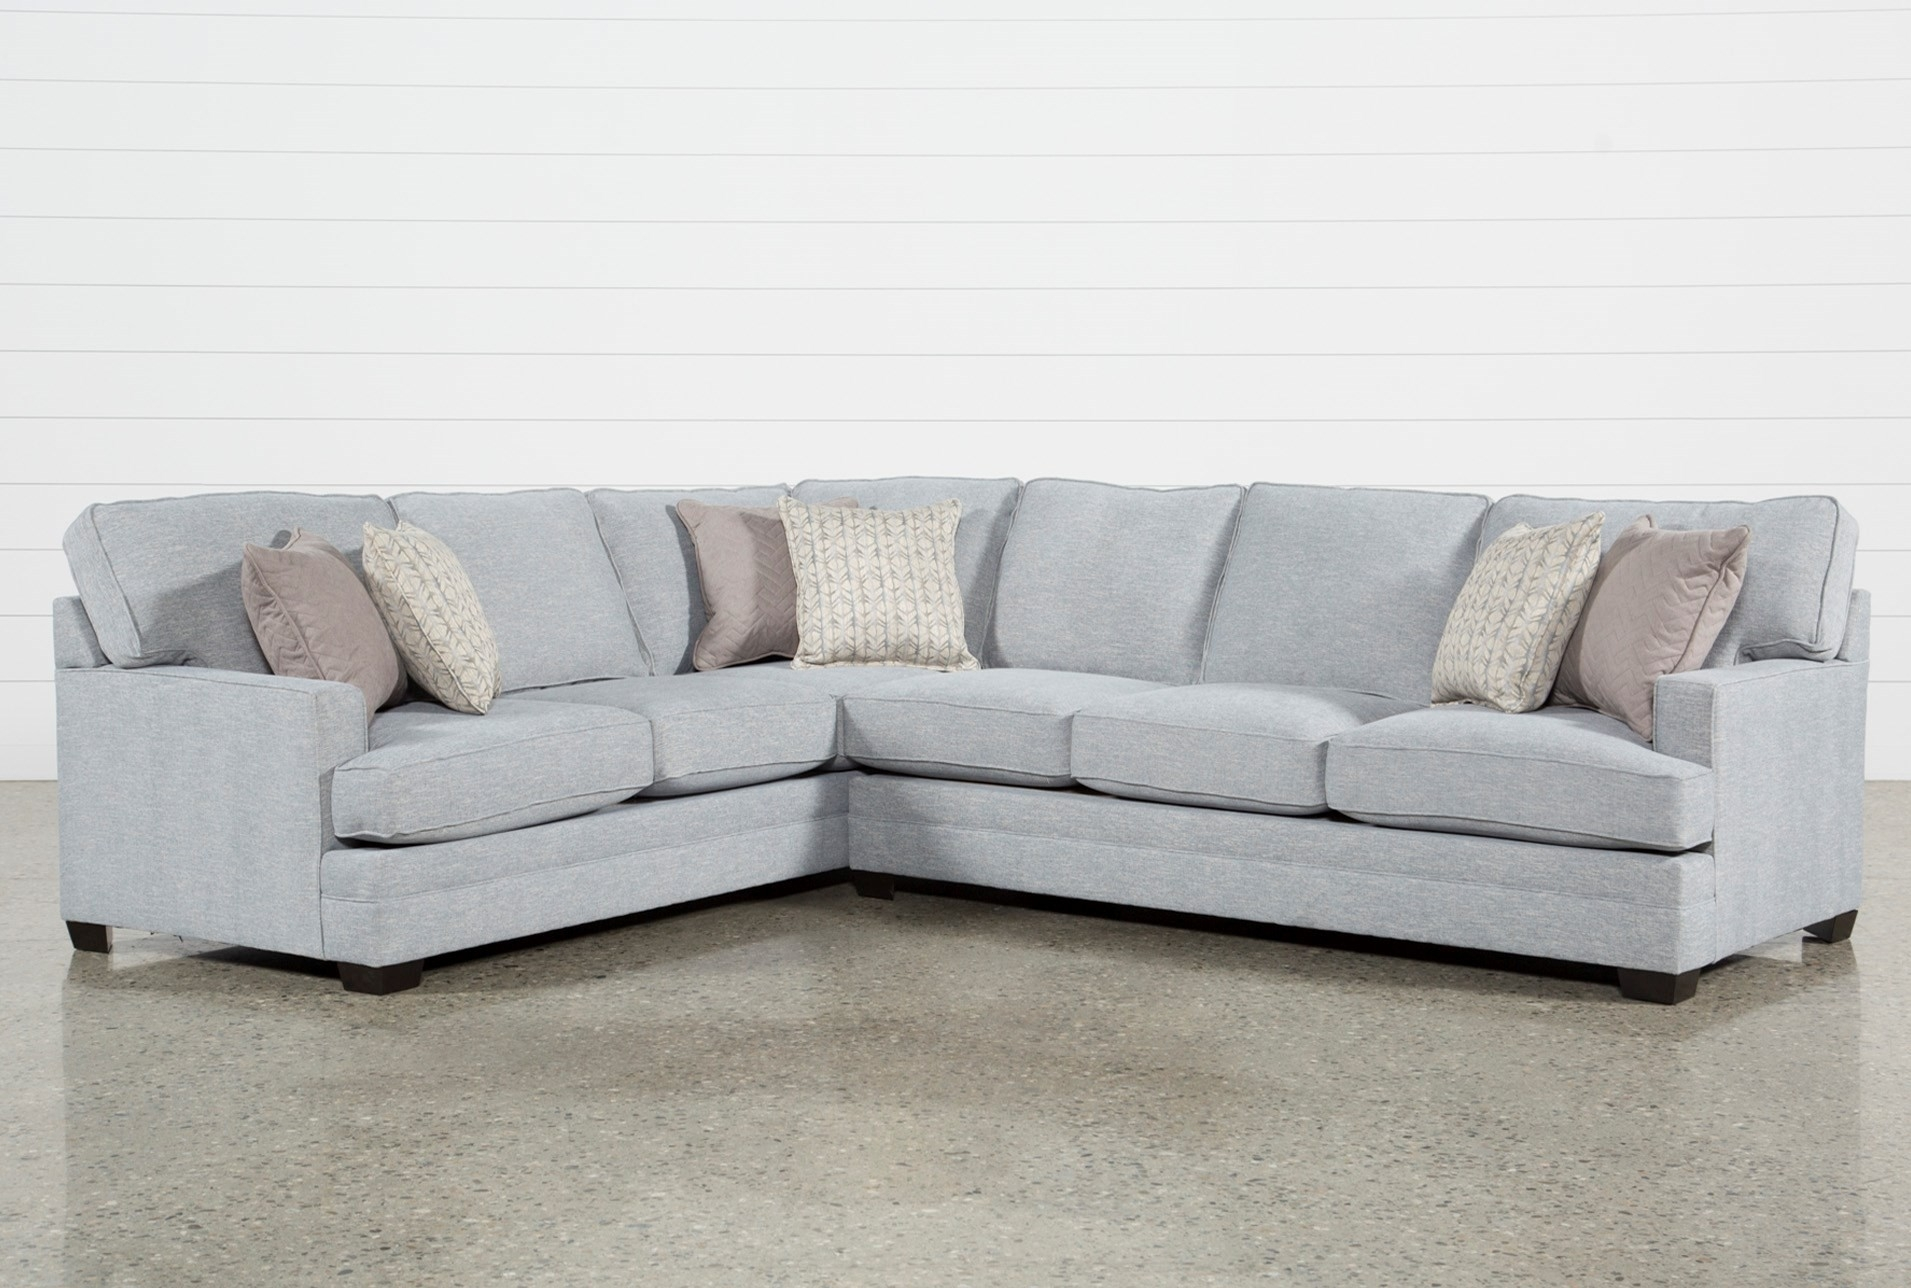 Living Spaces Sectional Cosmos Grey 2 Piece W Raf Chaise 206402 0 Regarding Cosmos Grey 2 Piece Sectionals With Raf Chaise (Image 18 of 25)